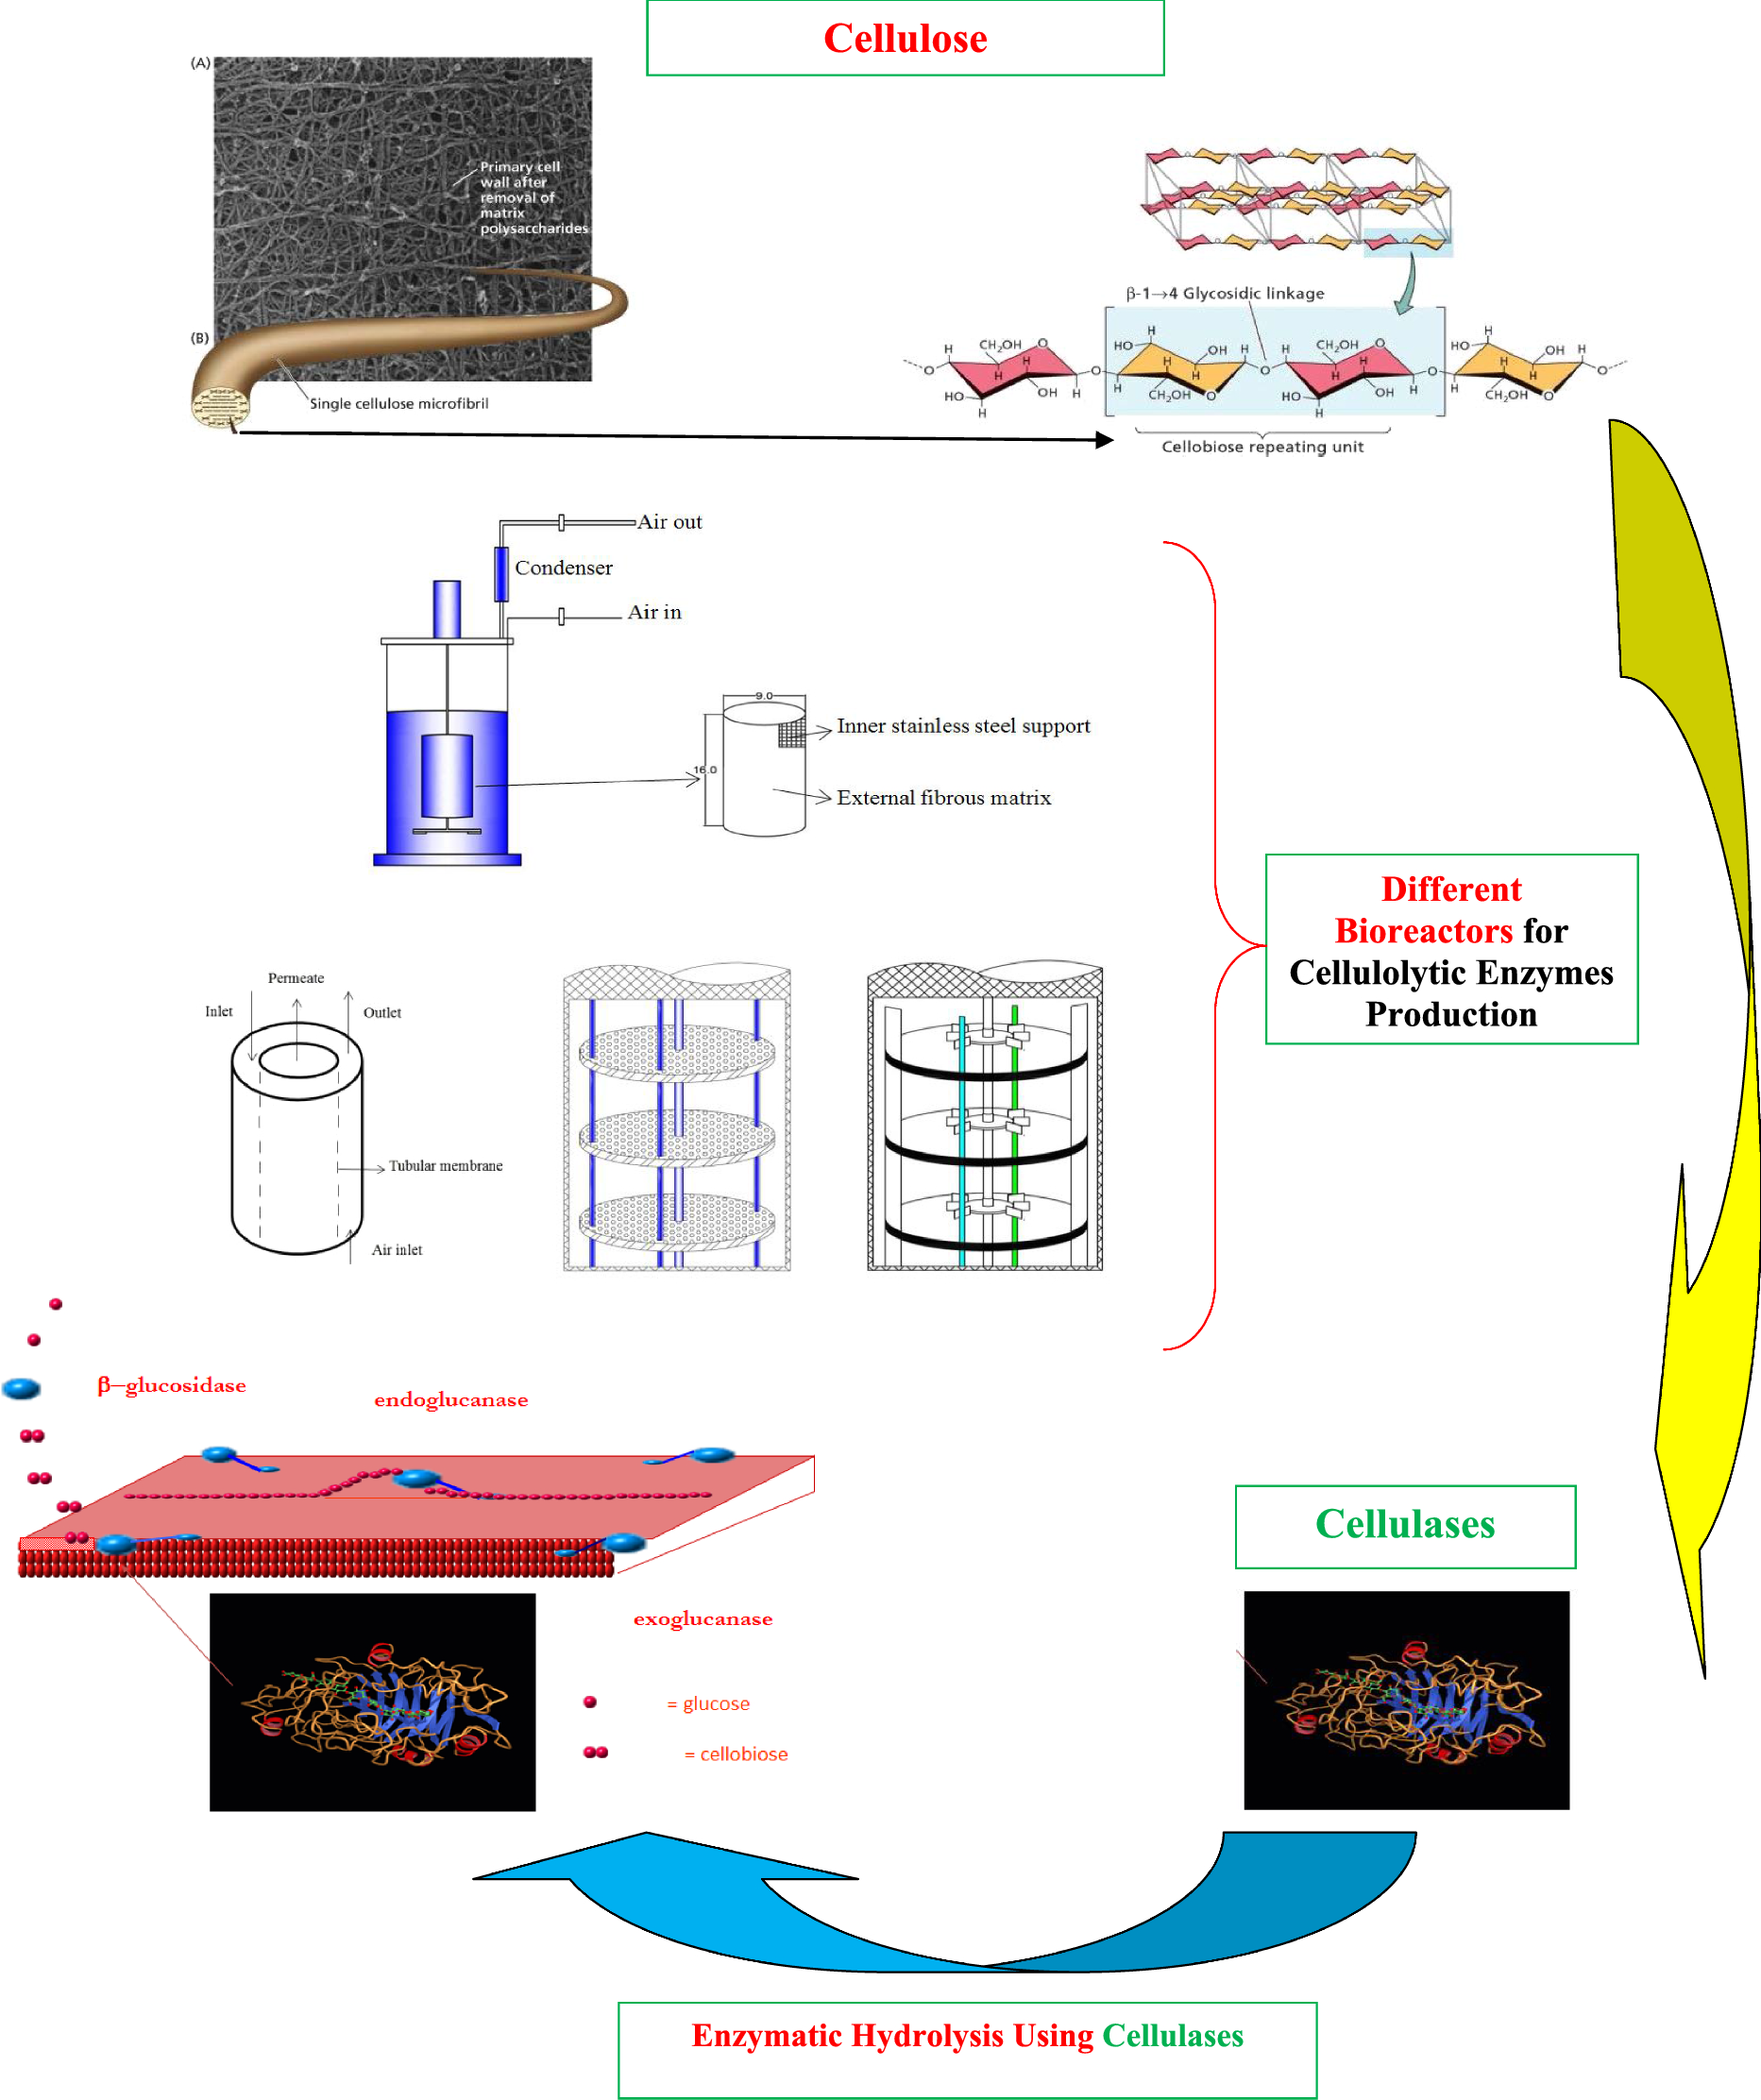 Etl Testing Useful Resources: A Review Of Bioreactor Technology Used For Enzymatic